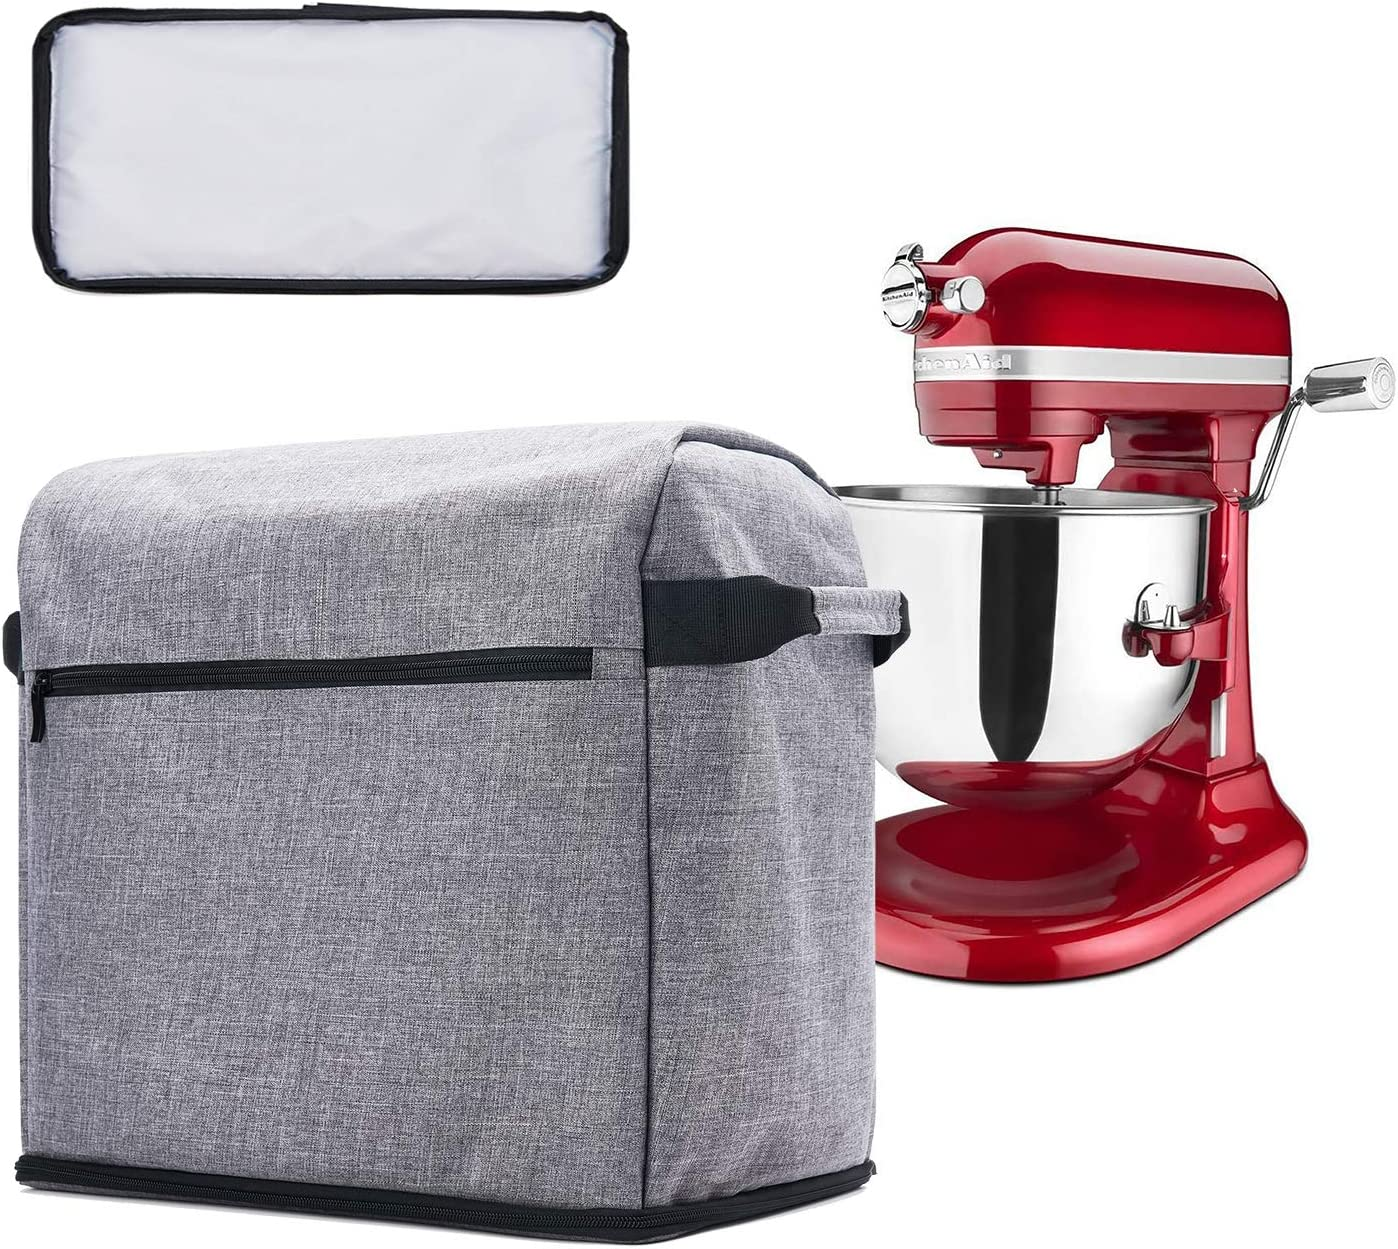 Gray Machine Washable BGD-DG Stand Mixer Cover with Removable Bottom Storage Bag with Zipper /& Open Pockets Compatible with 5-8 Quart KitchenAid Bowl Lift